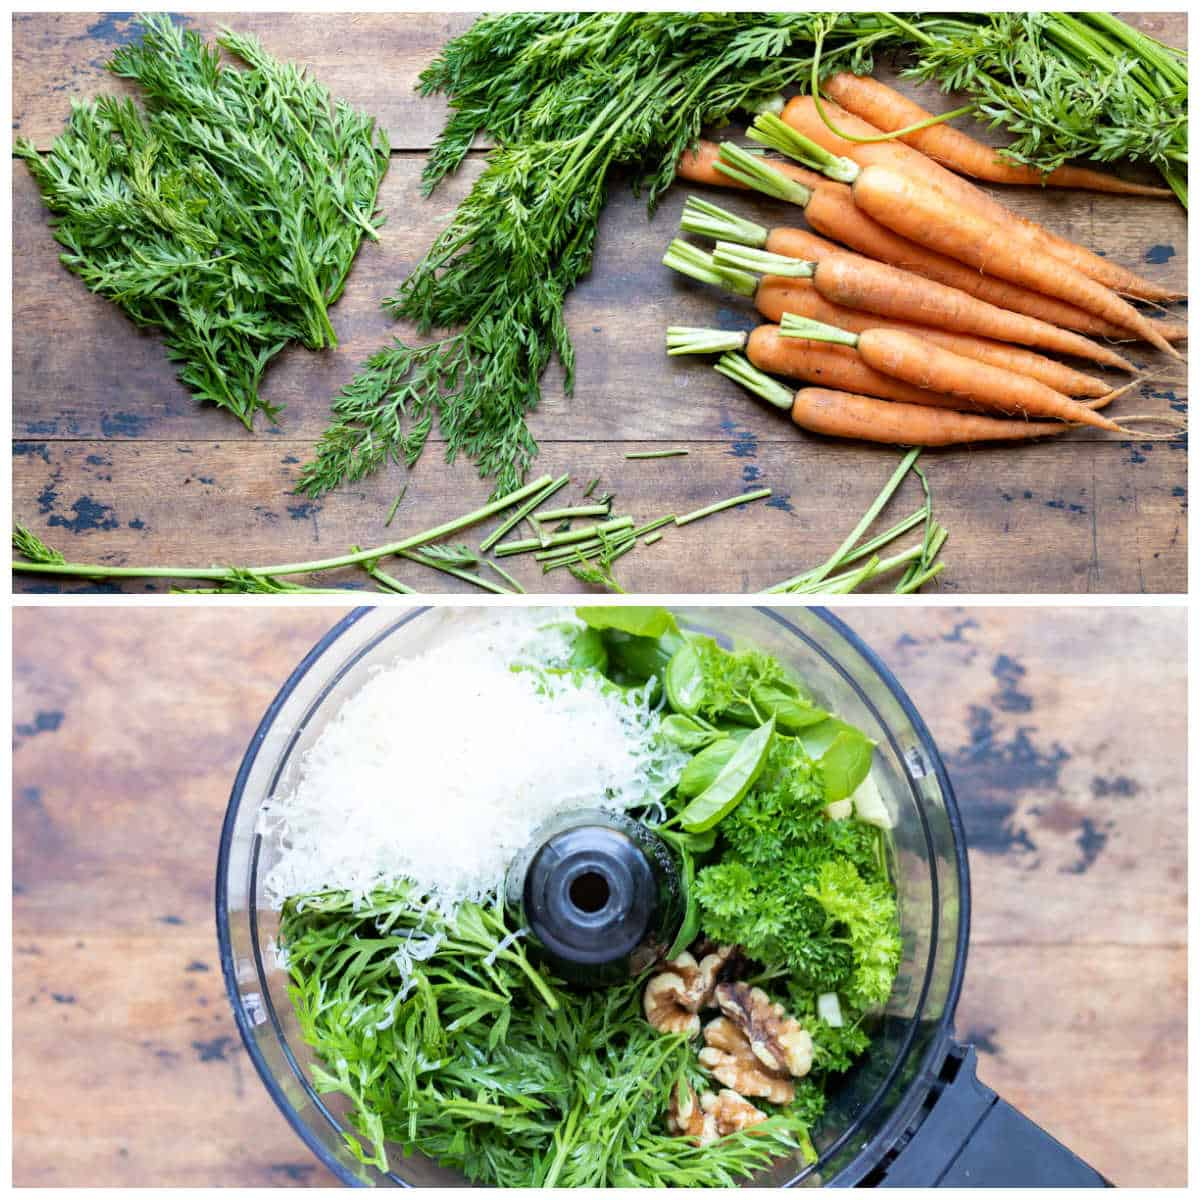 Collage: chopping carrot greens, pesto ingredients in a food processor.